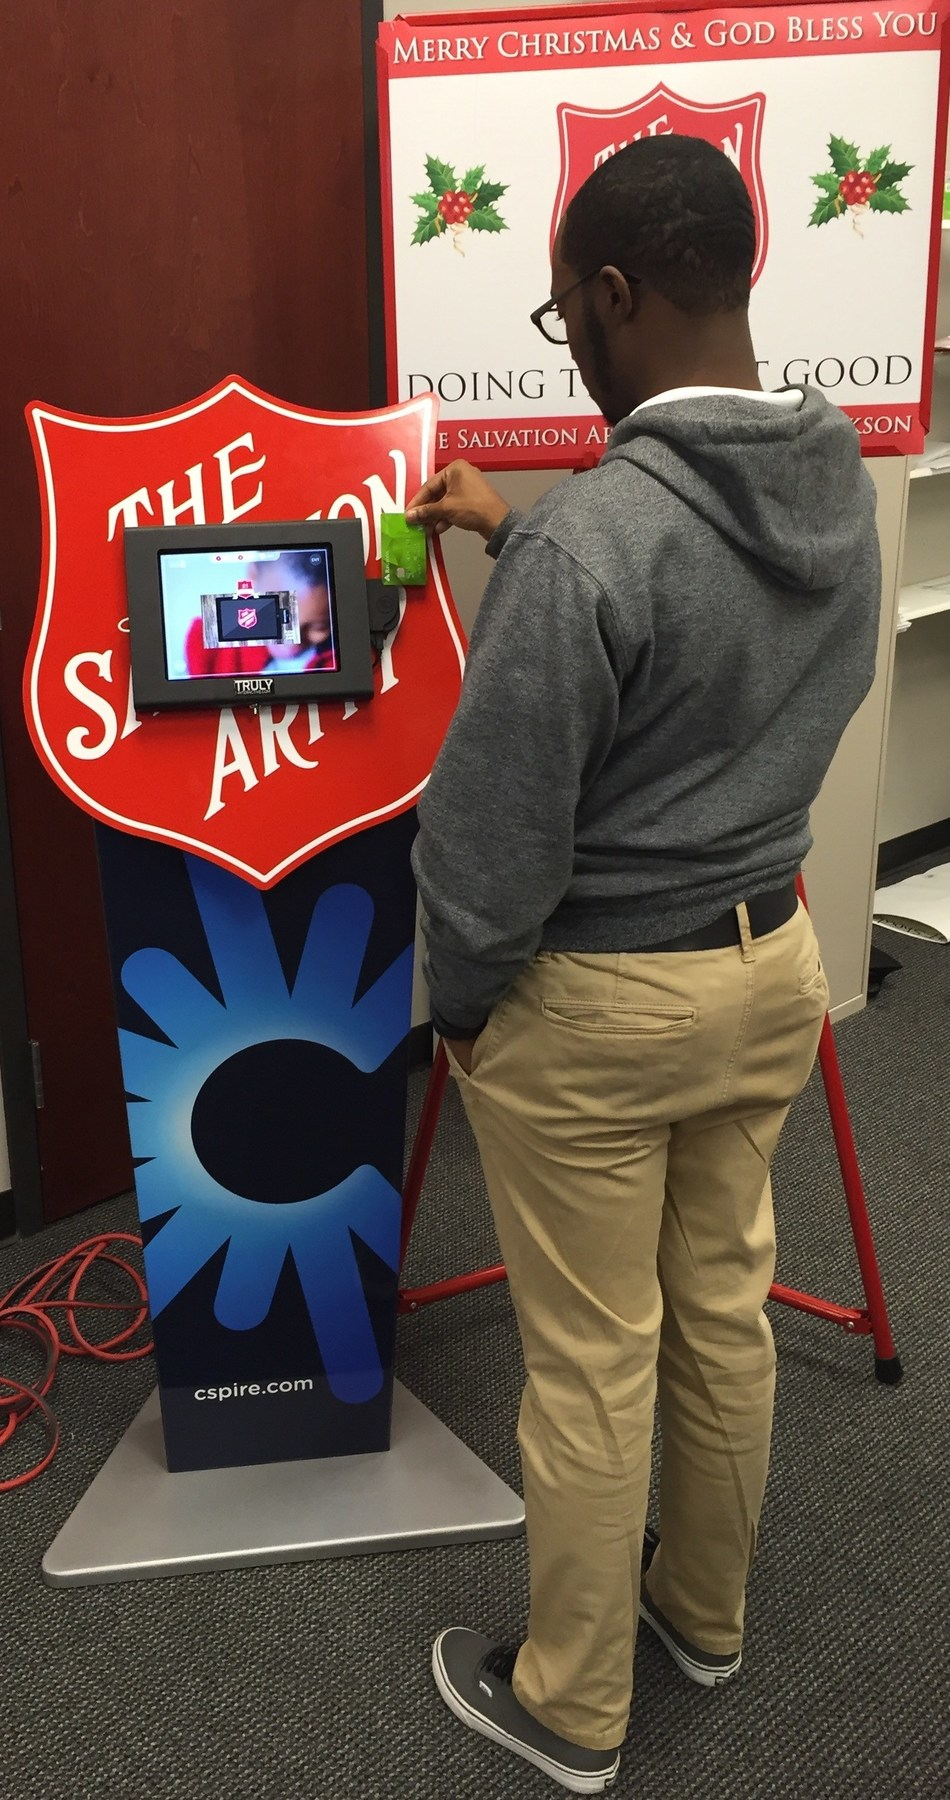 C Spire is funding a groundbreaking technology initiative with The Salvation Army that gives consumers the option to make credit and debit card donations through special Red Kettle mobile giving station kiosks equipped with tablets, secure e-readers and swipe technology at selected stores and businesses in central Mississippi.